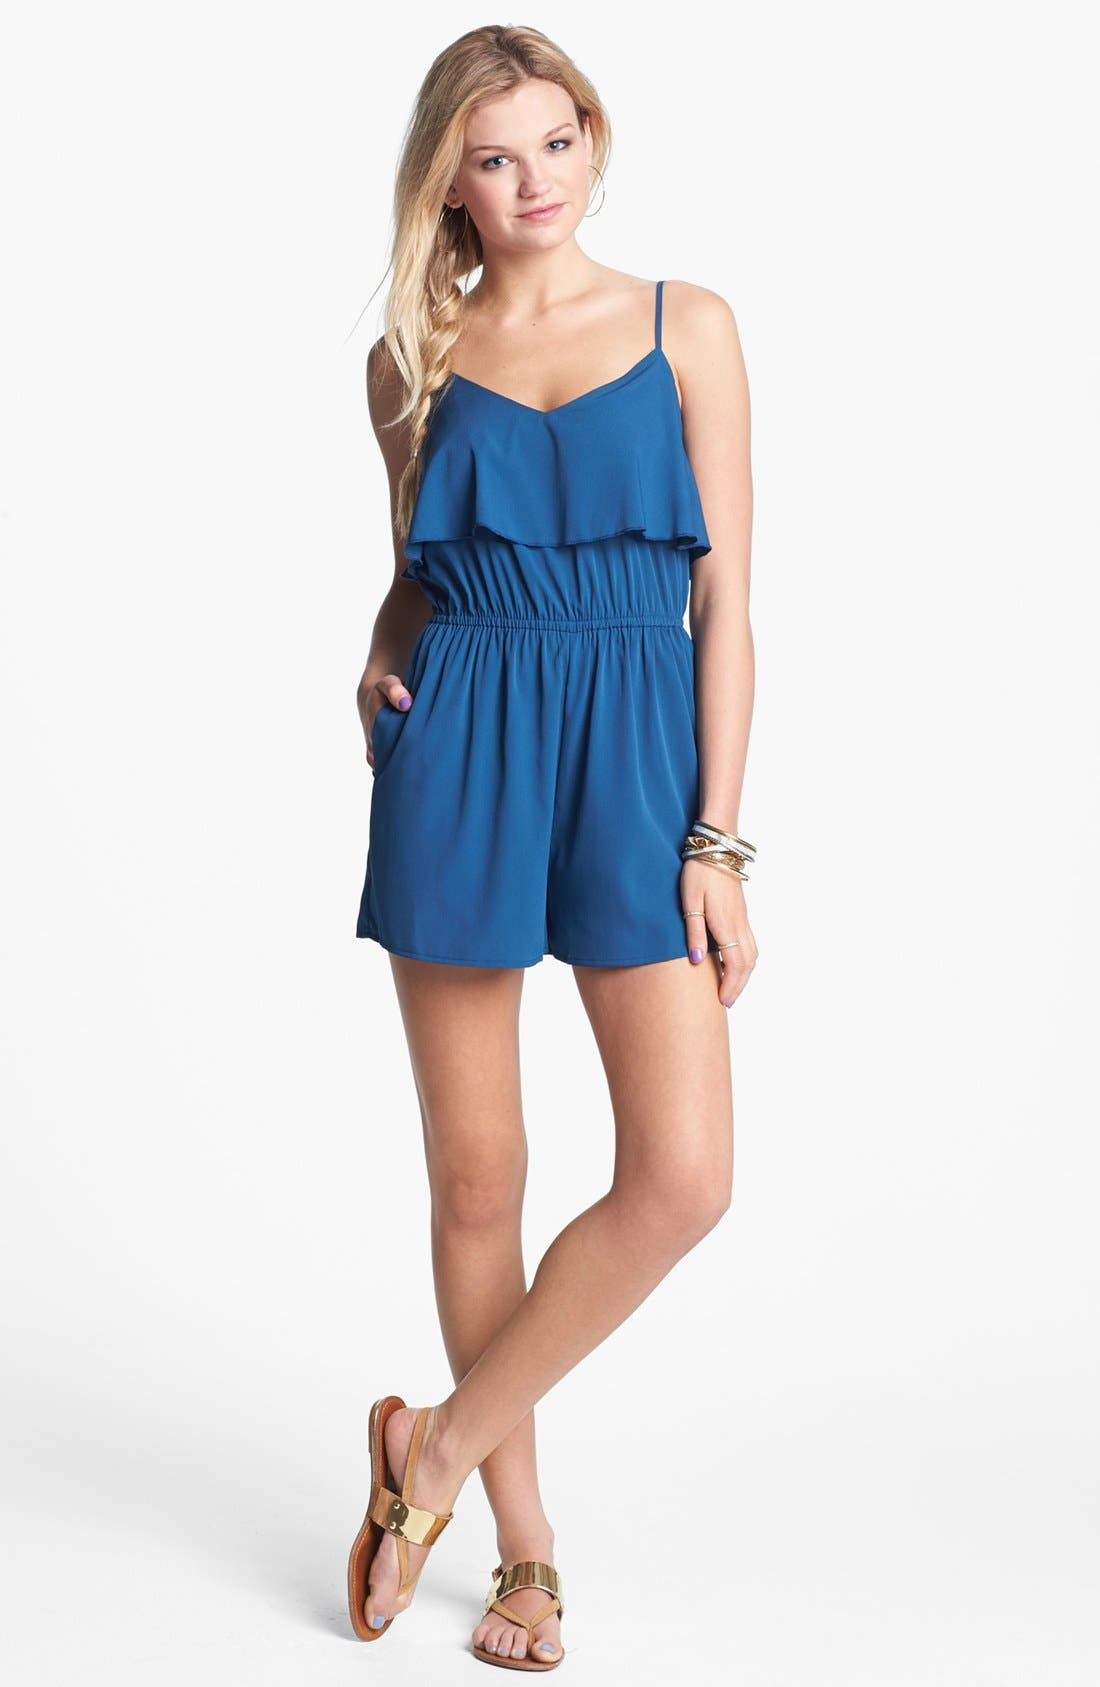 Alternate Image 1 Selected - Band of Gypsies Ruffle Romper (Juniors) (Online Only)